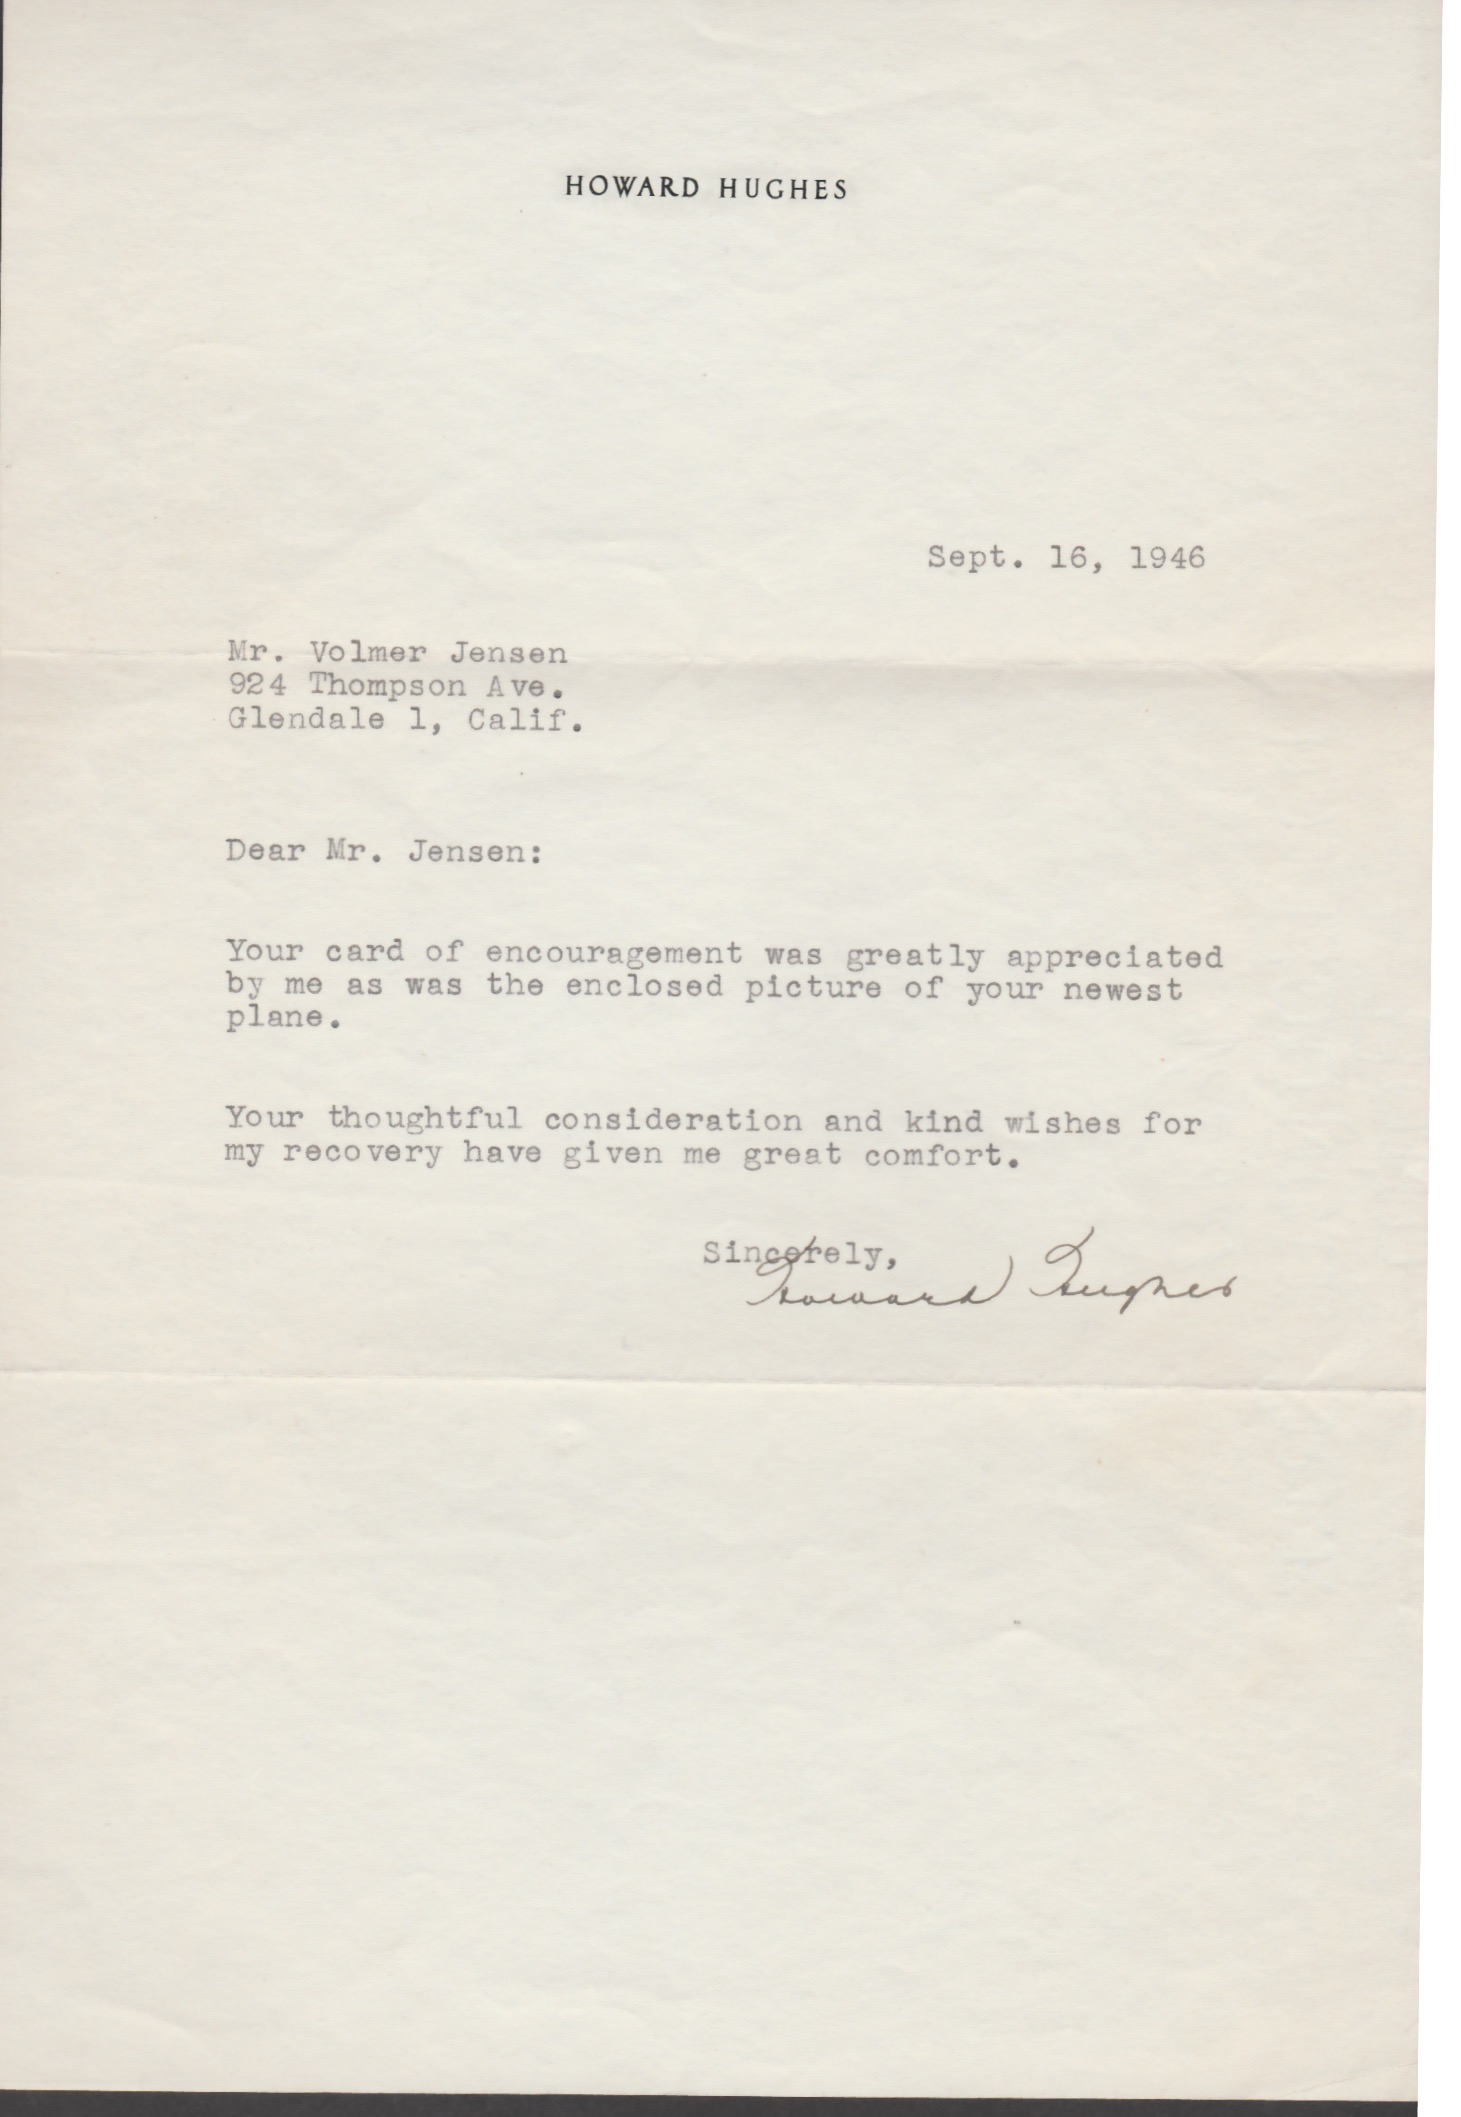 """Airmails - Russia / USA / France 1938 Printed """"Howard Hughes, New York Worlds Fair 1939"""" - Image 4 of 4"""